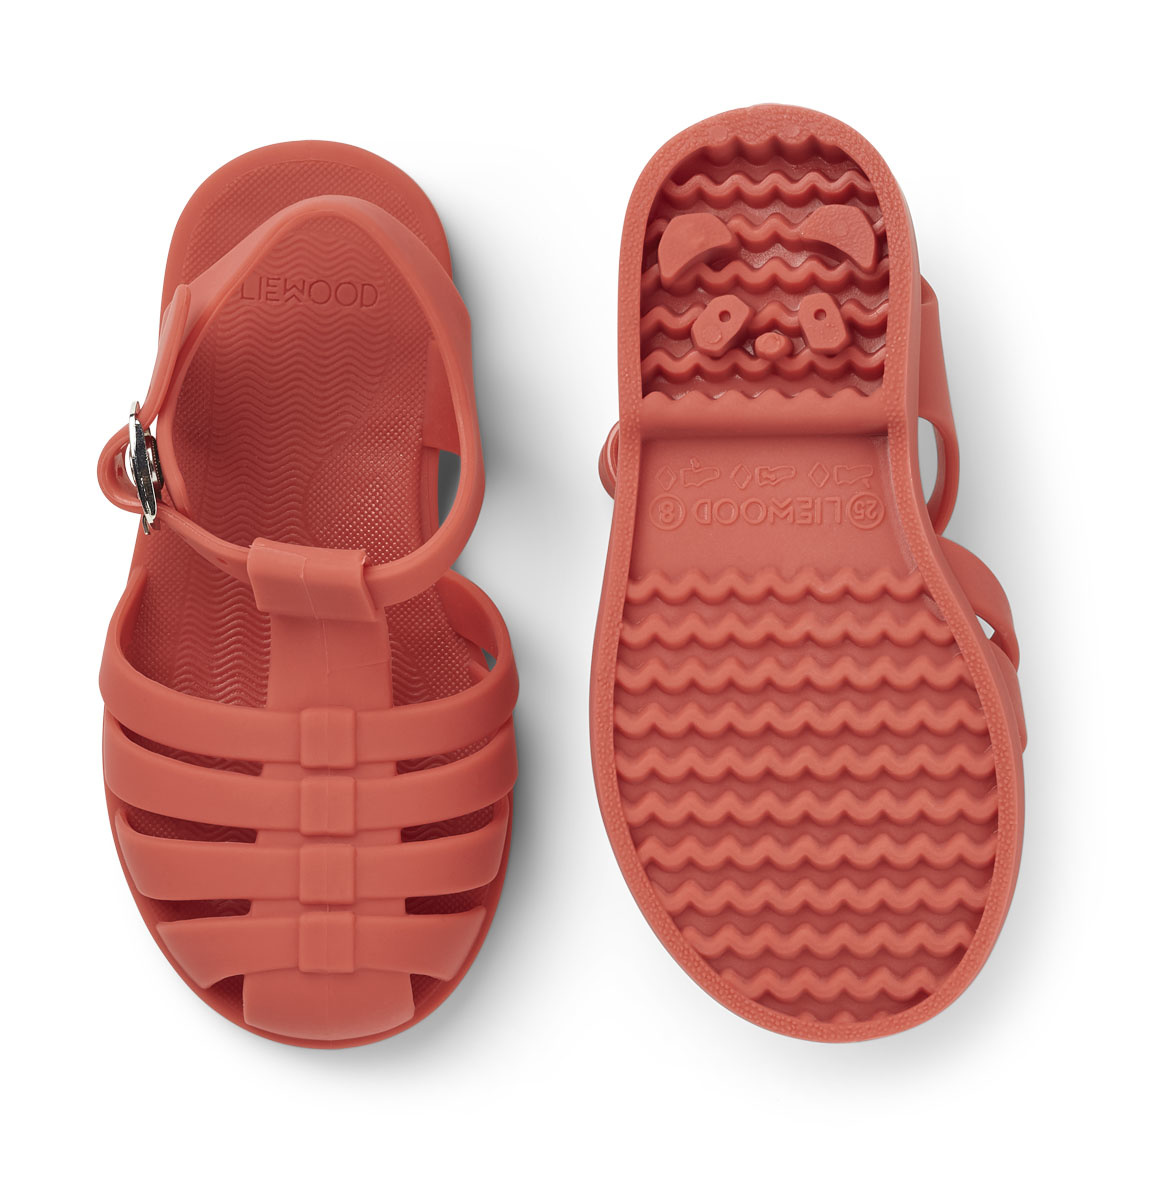 Bre Sandals - Apple red-2